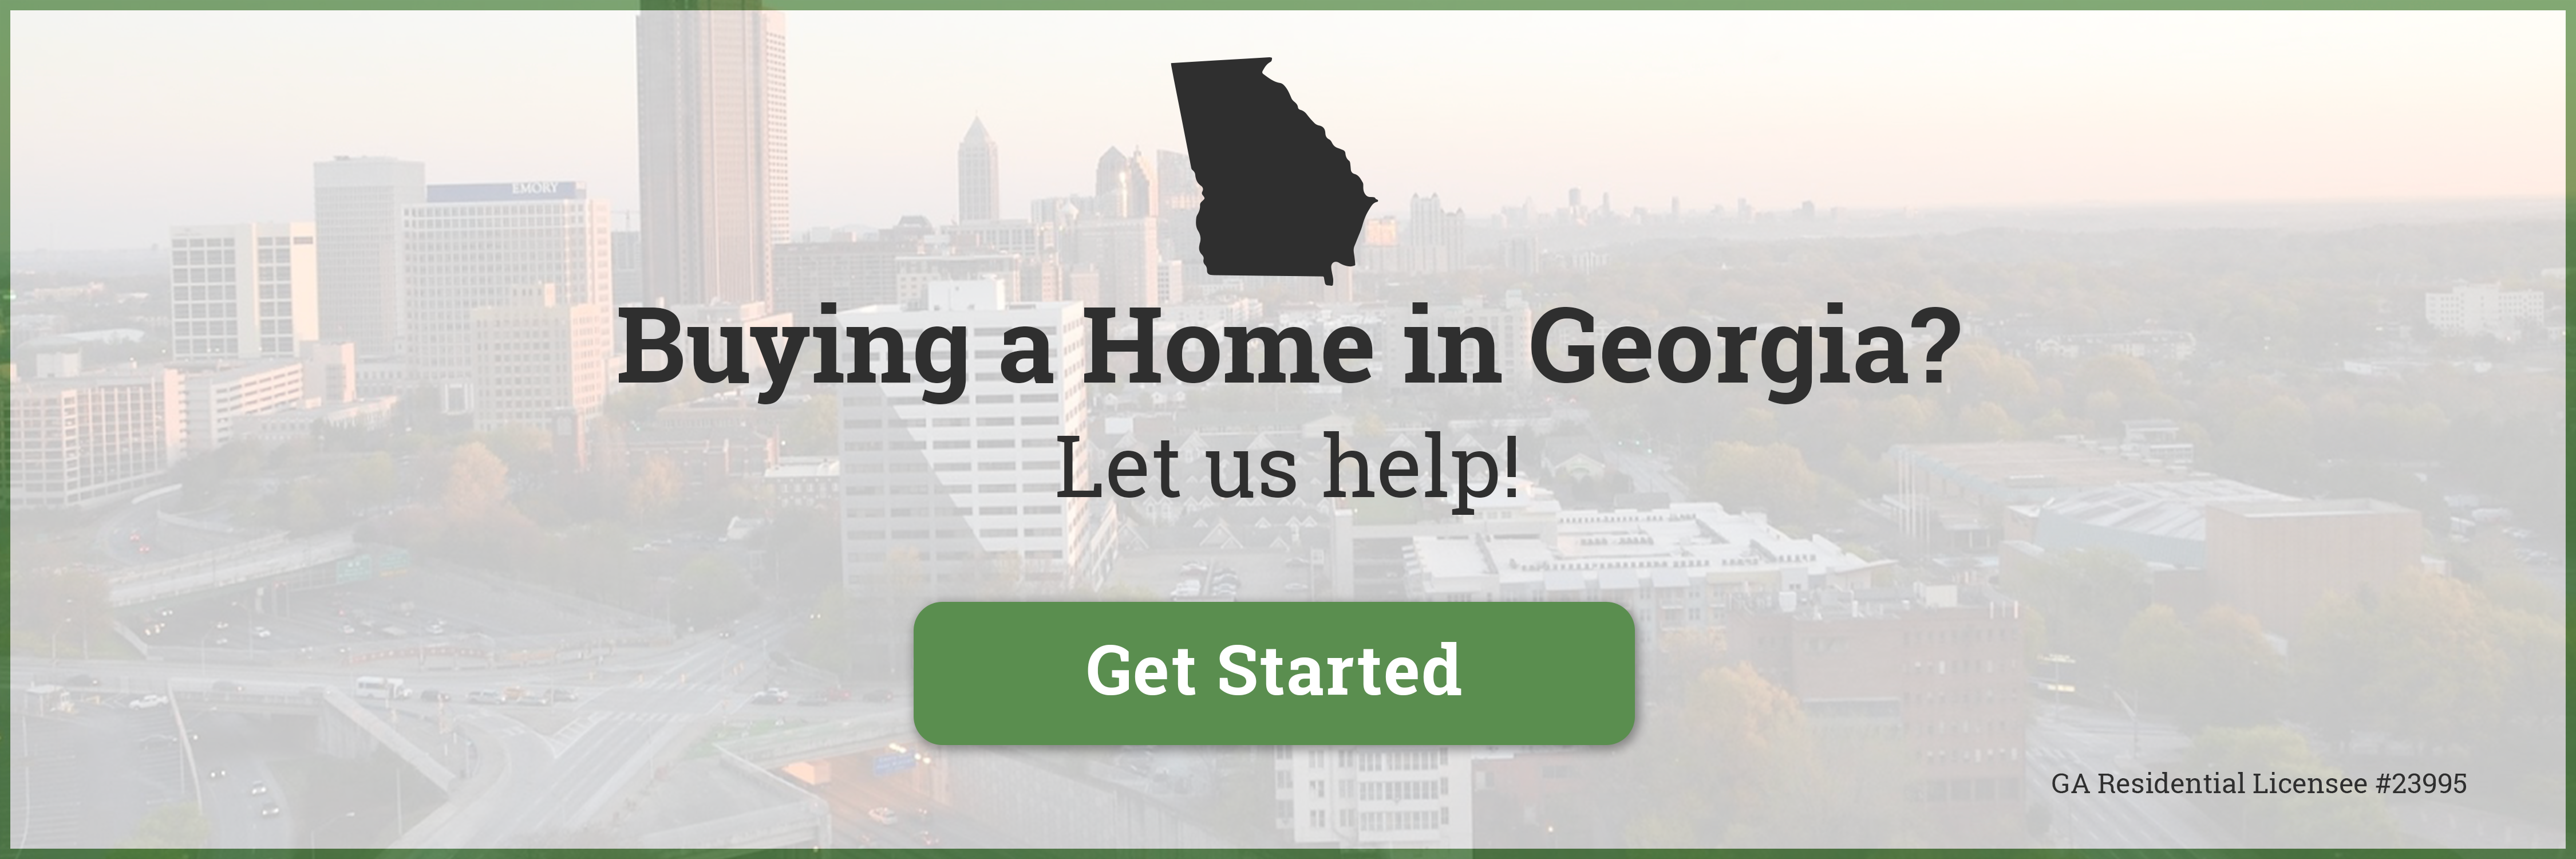 Buying a Home in Georgia?